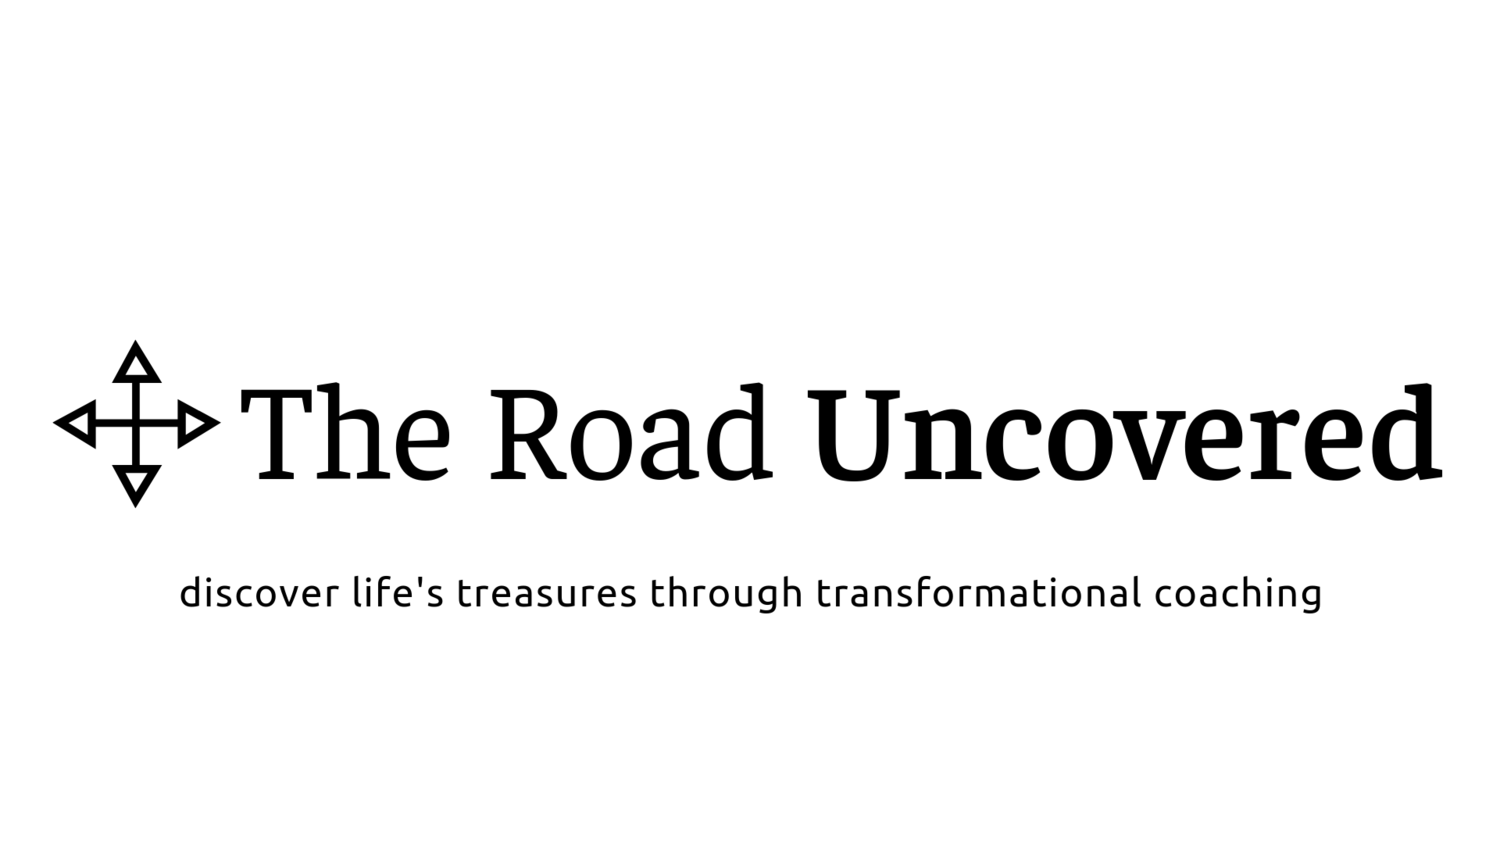 The Road Uncovered Coaching